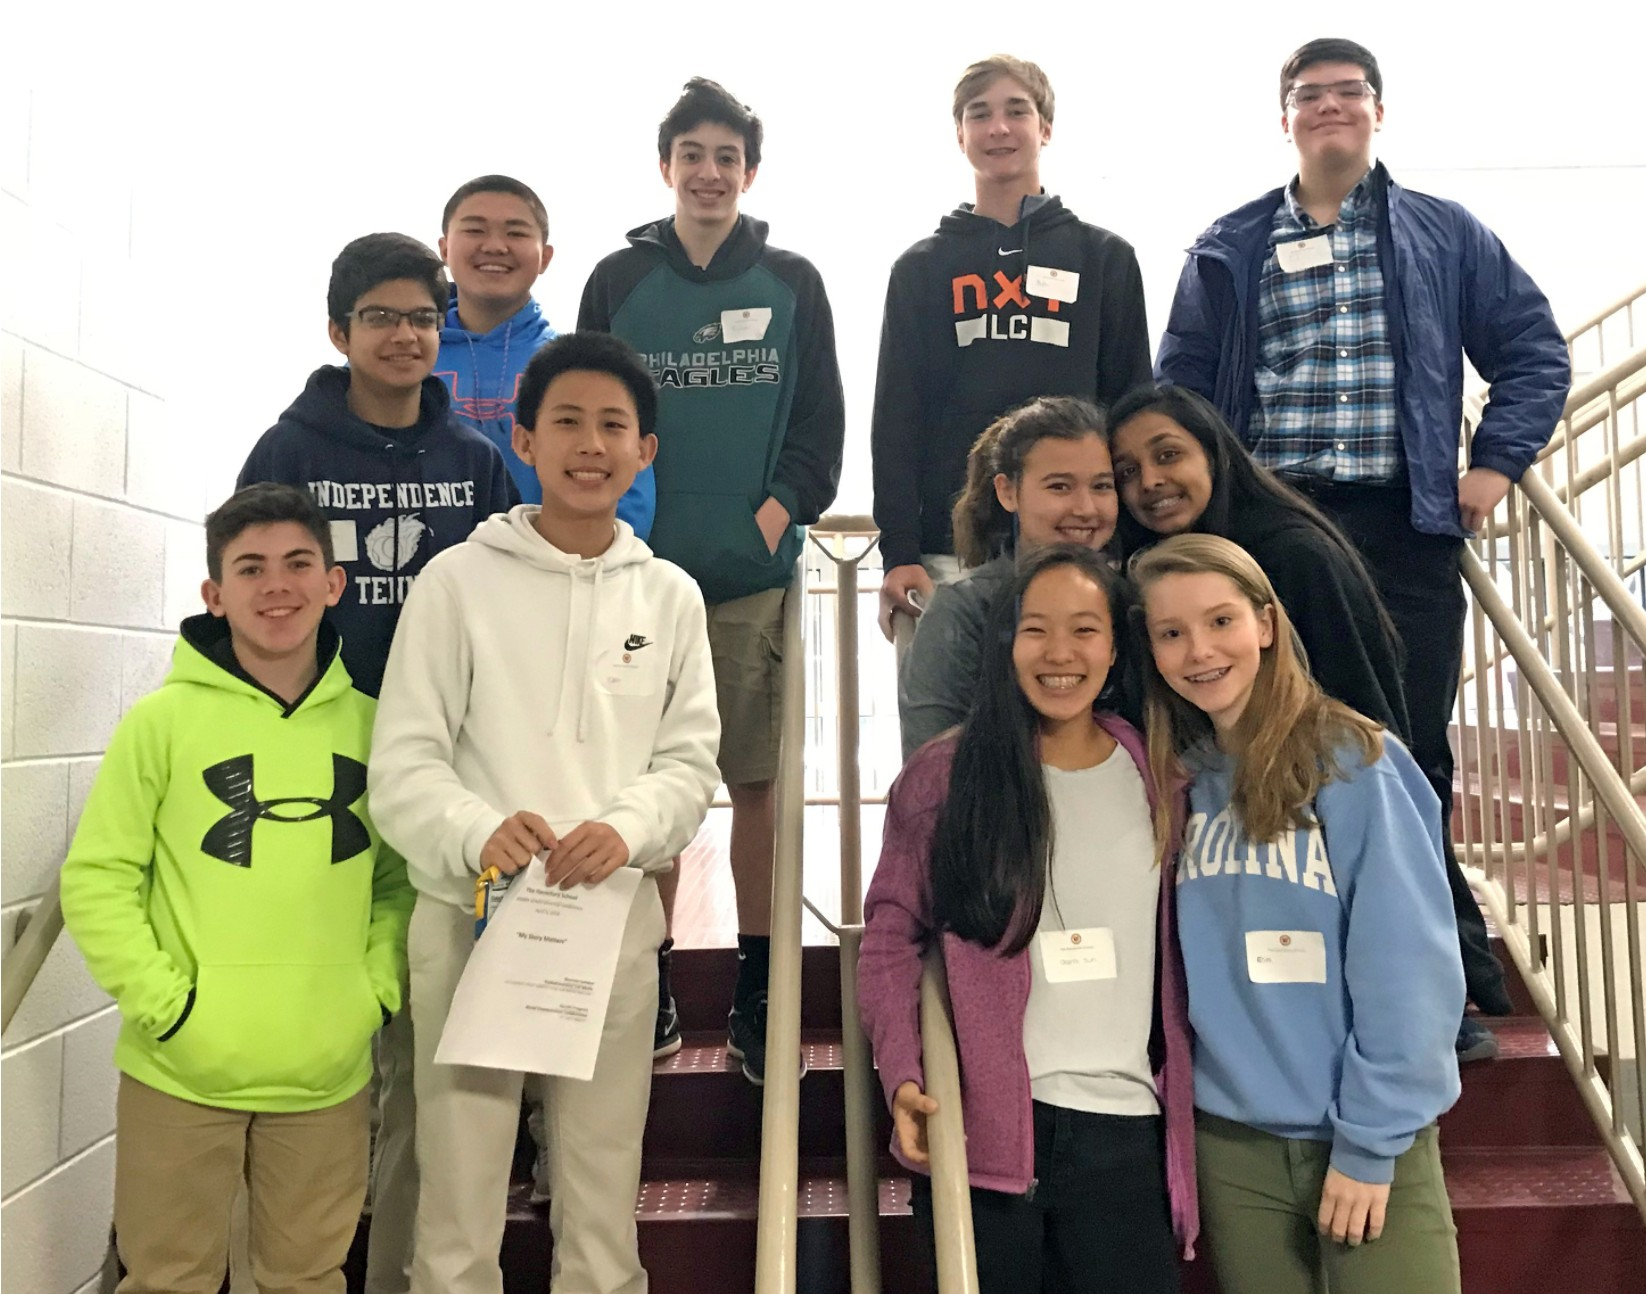 Student Government Association represented at Middle School Diversity Conference